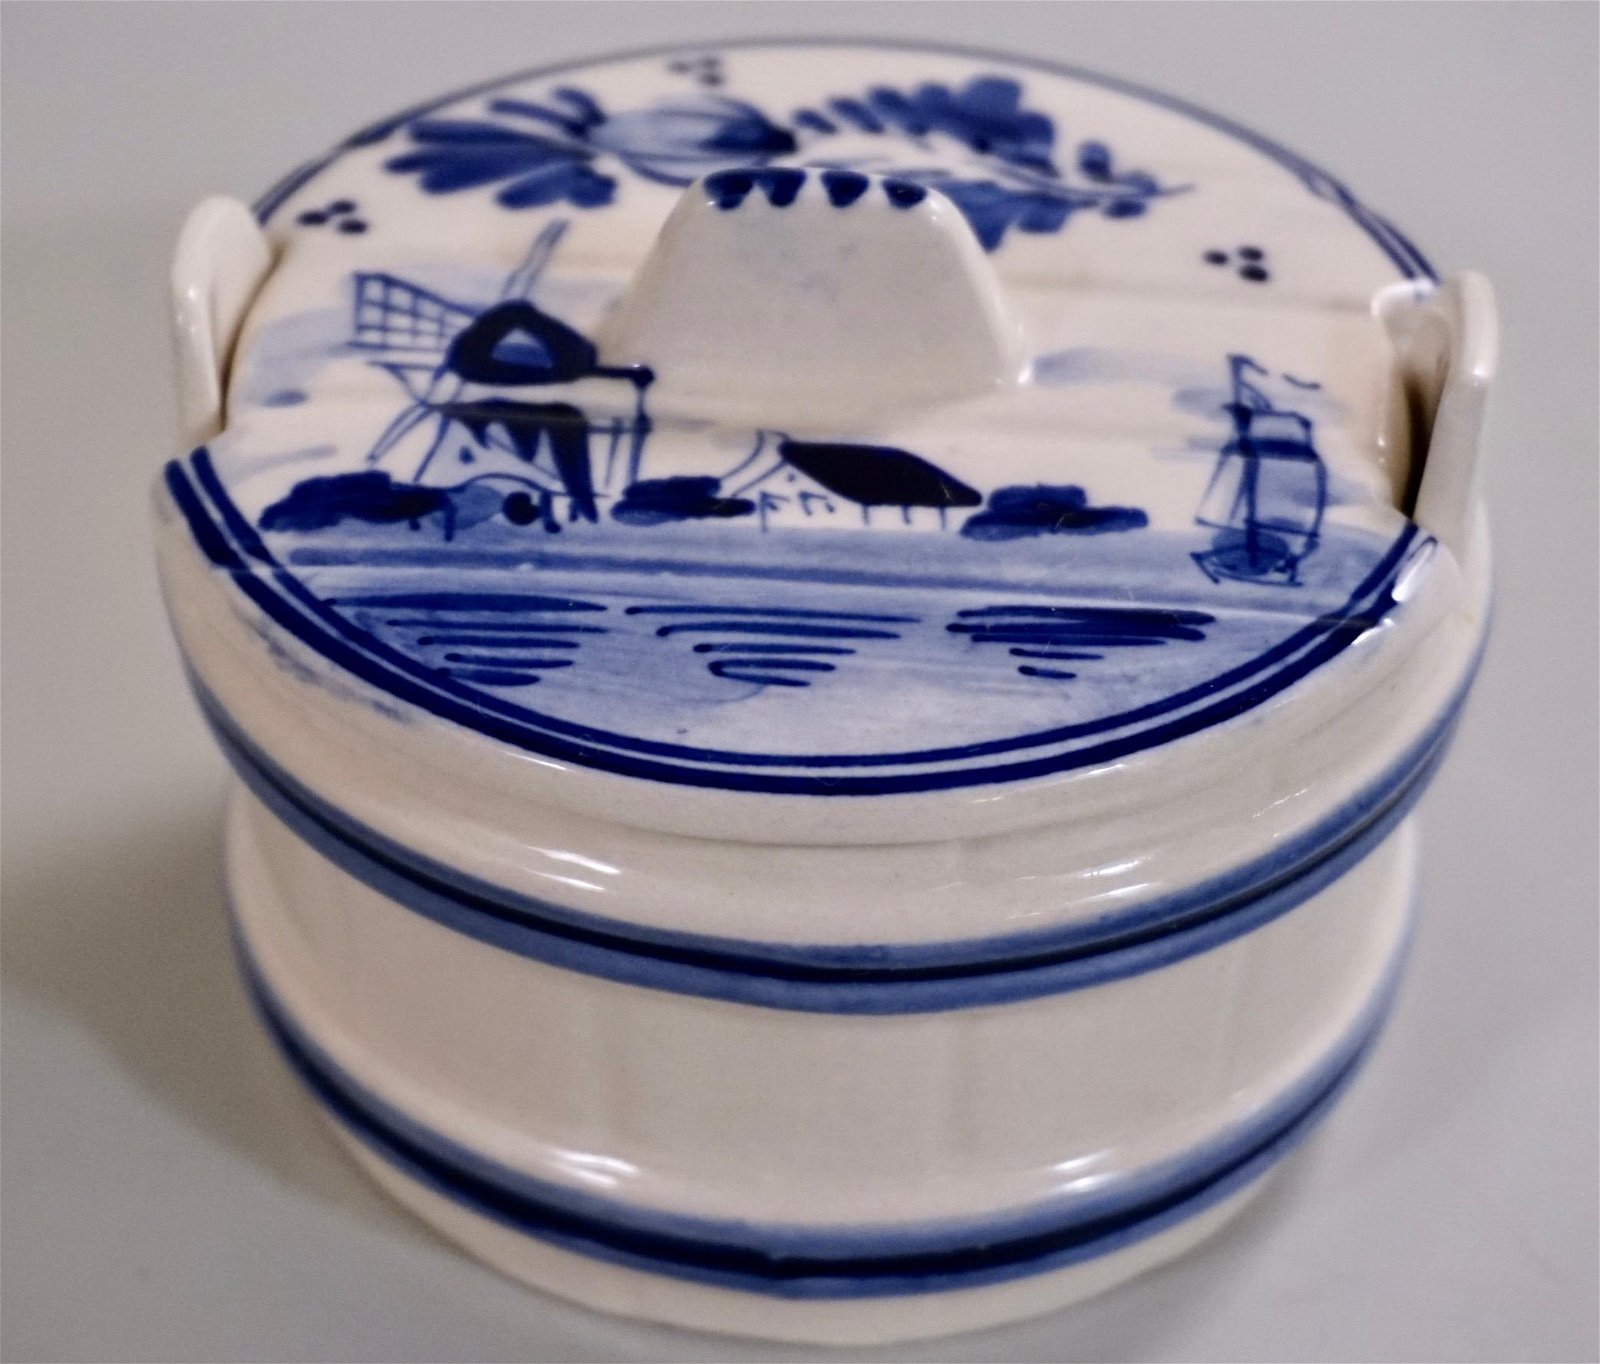 Delft Blue Master Salt Cellar with Lid